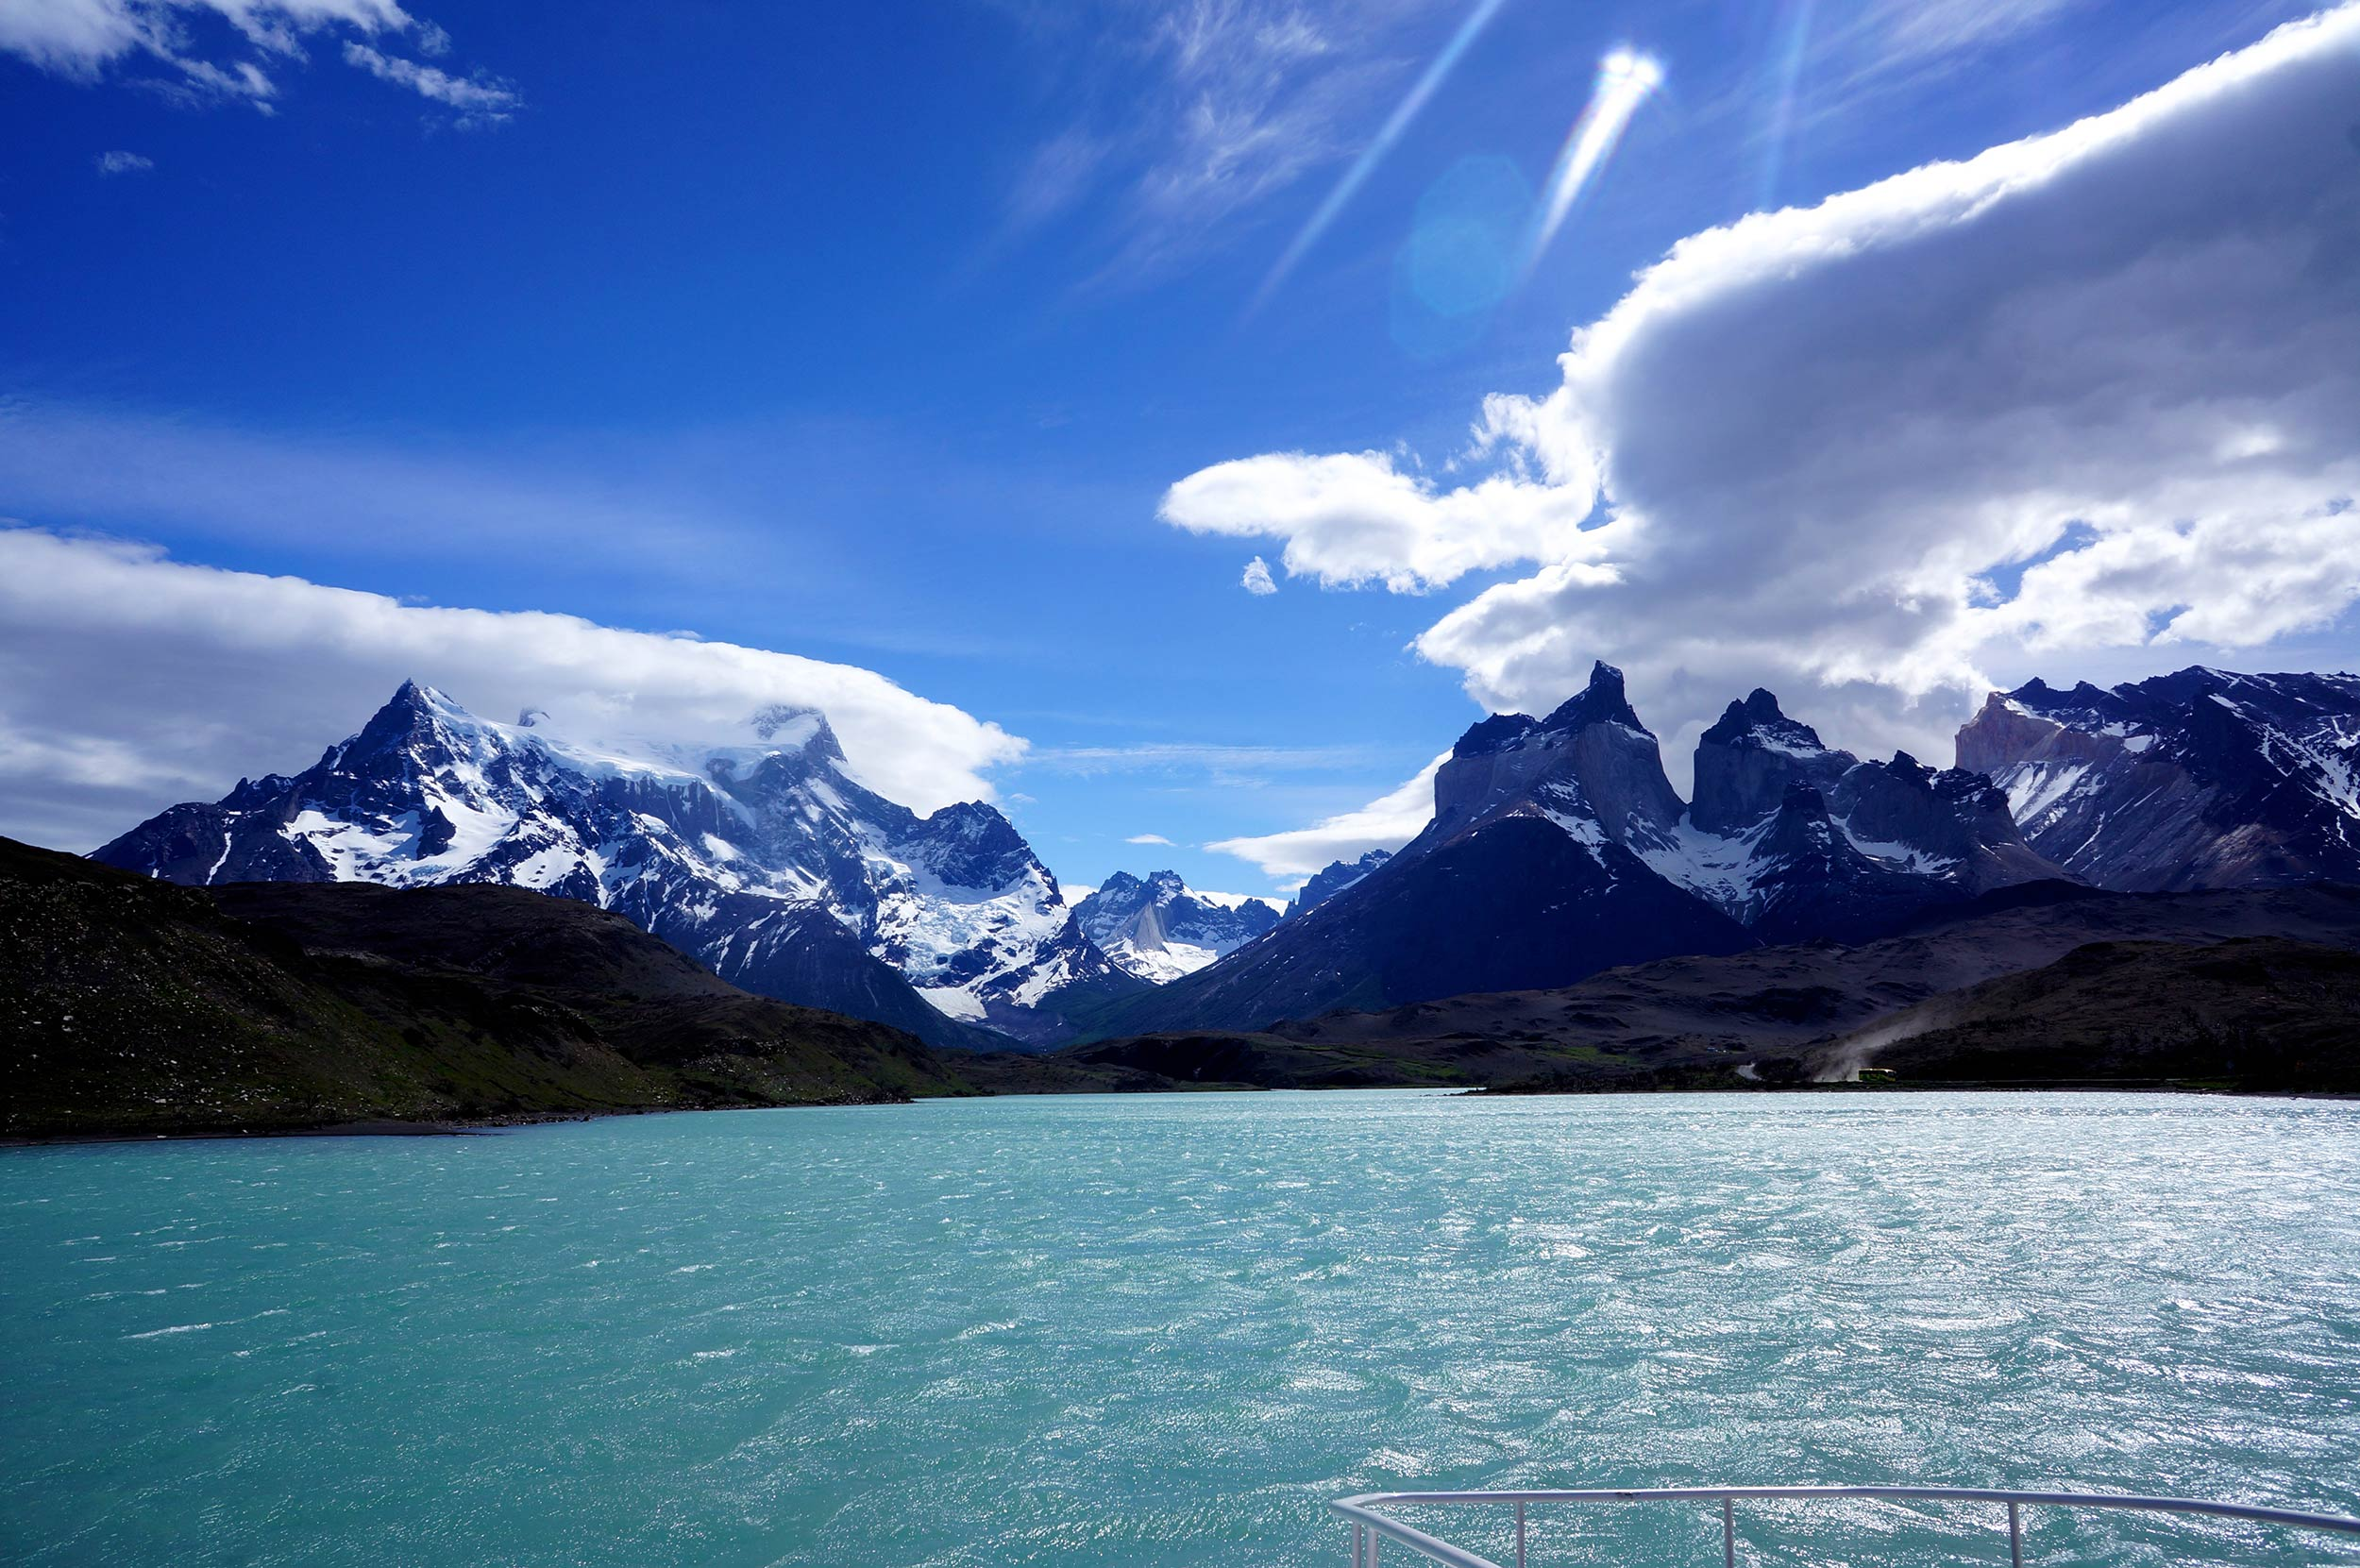 torres_del_paine_lake_mountains.jpg